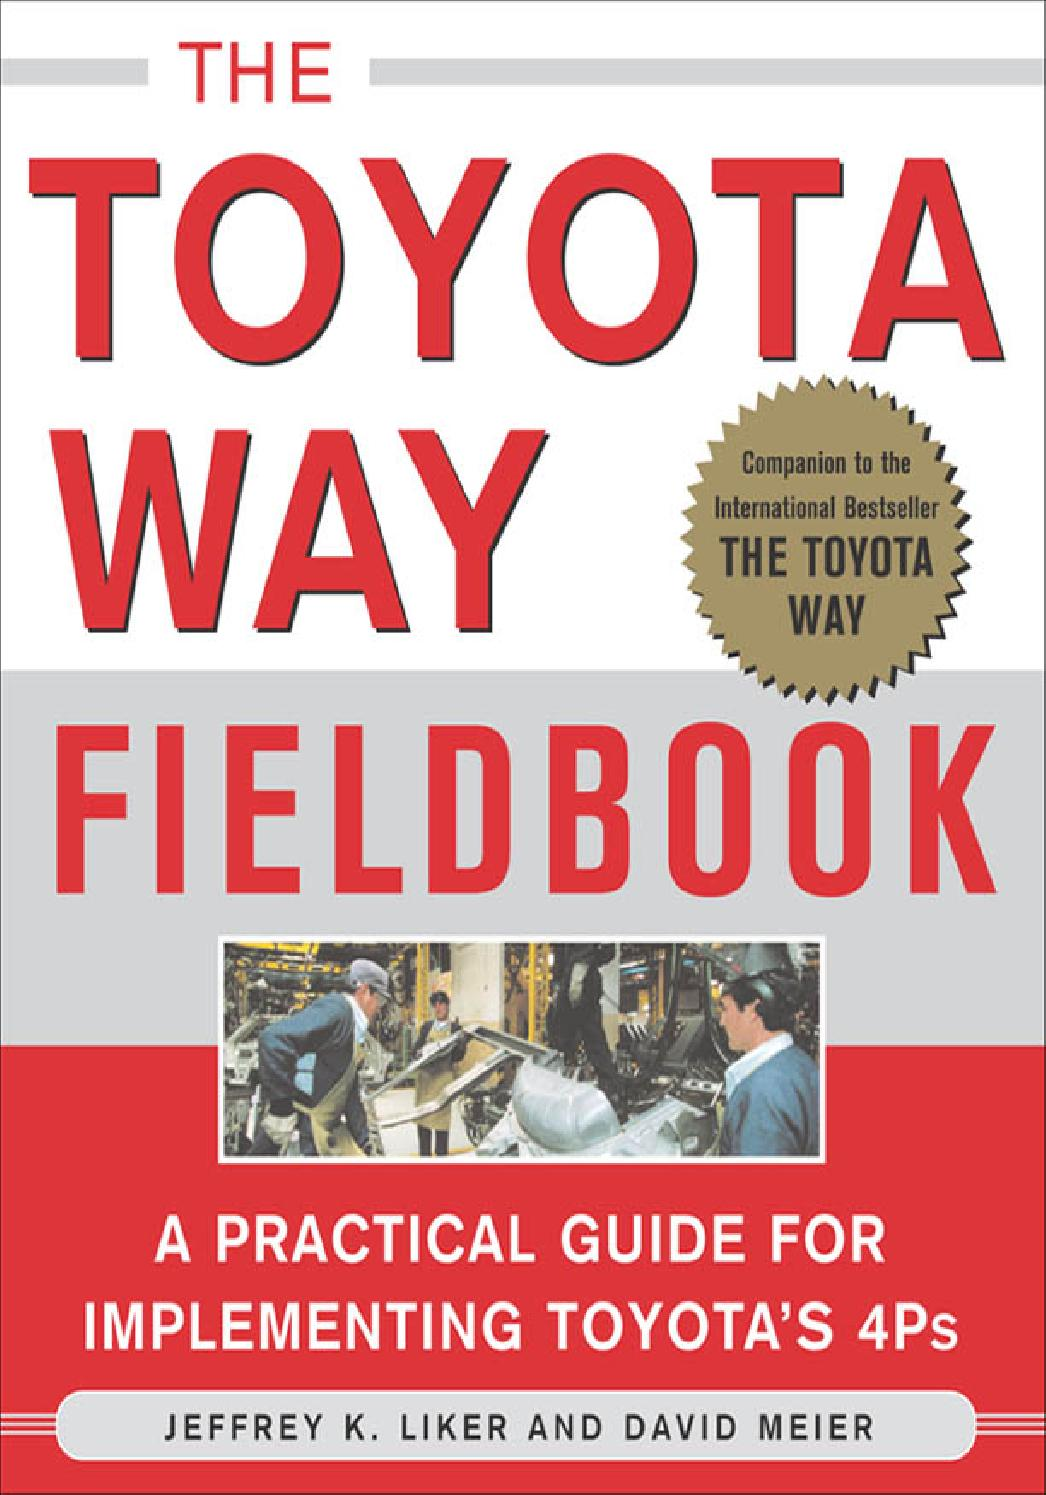 The toyota way fieldbook by matthew betsy issuu fandeluxe Choice Image